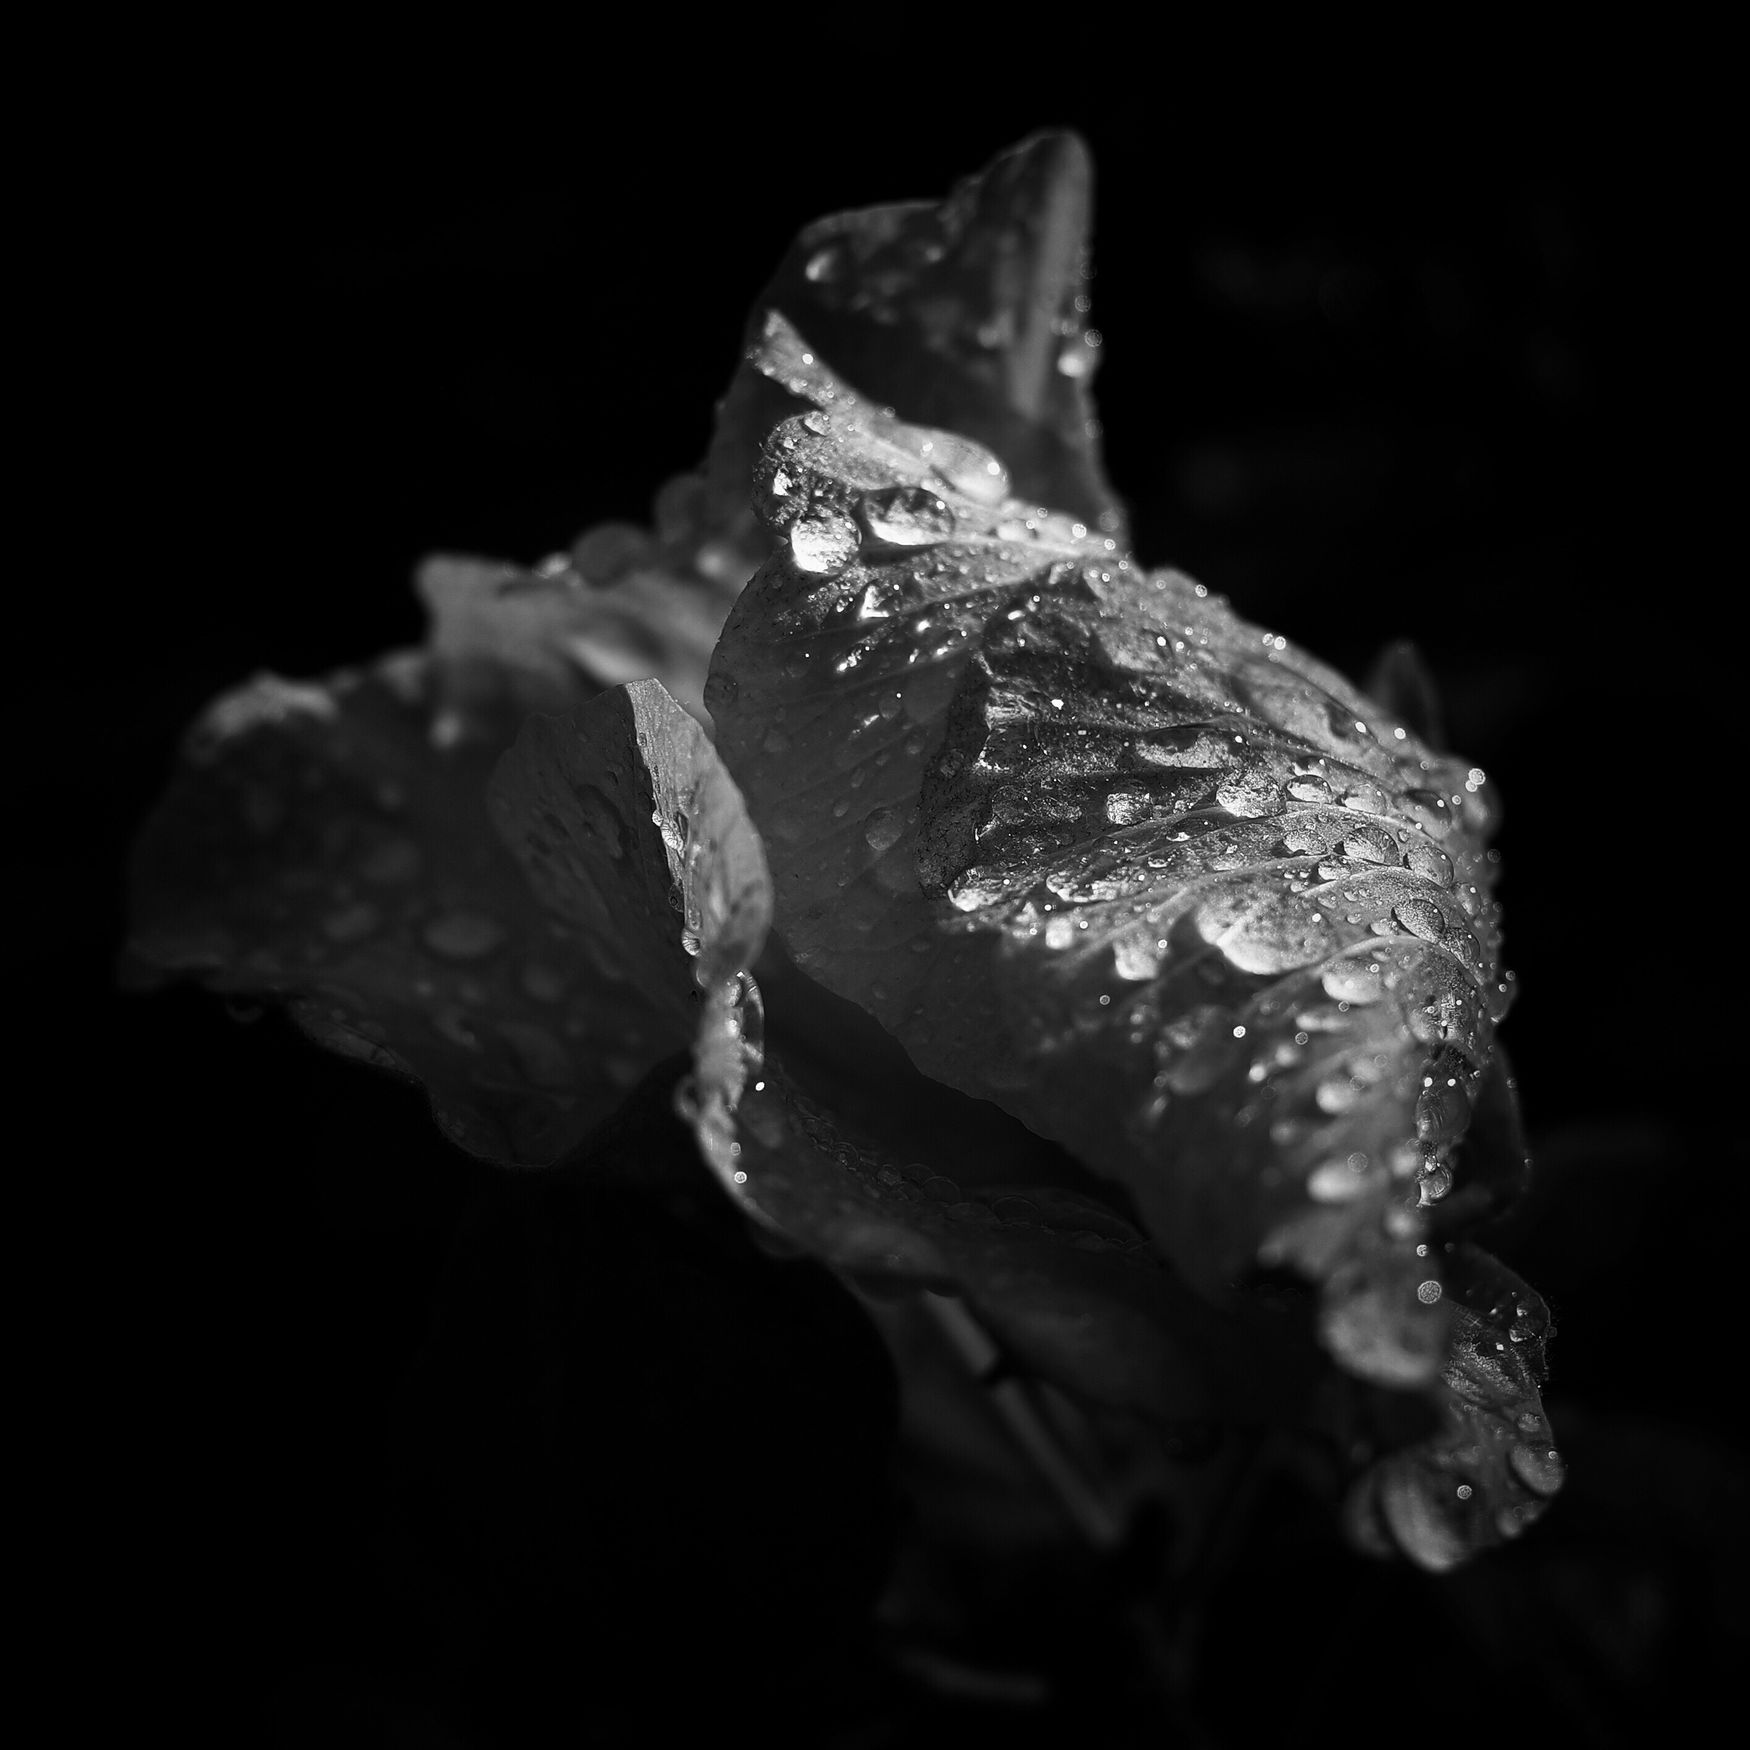 Hibiscus Cotton Hibiscus Black And White Light And Shadow Raindrops Flower Flower Head